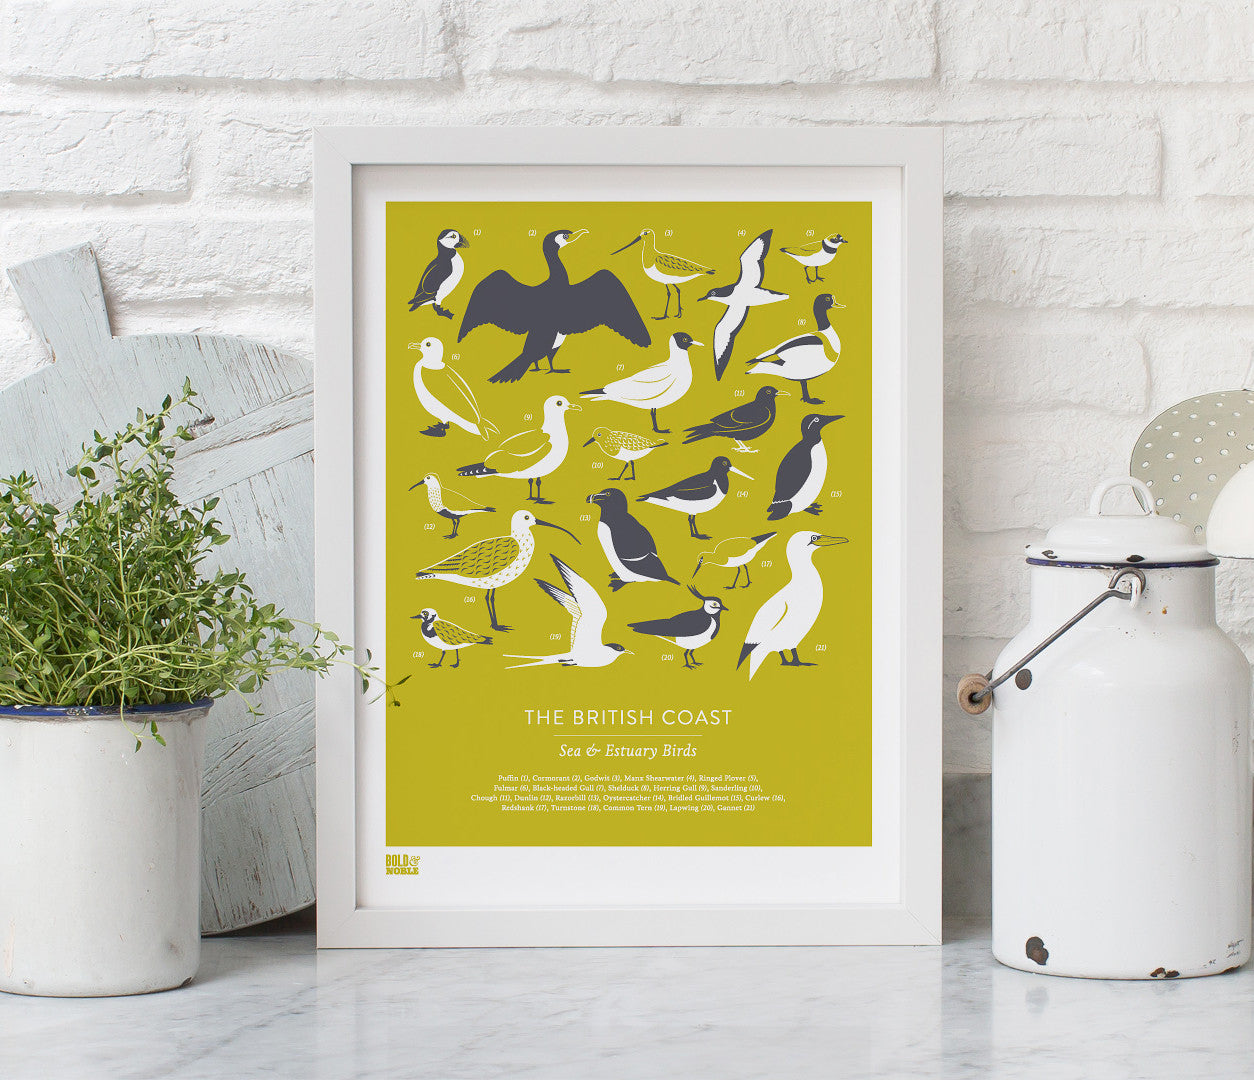 Pictures and wall art, screen printed British Coastal Birds poster in grey and yellow